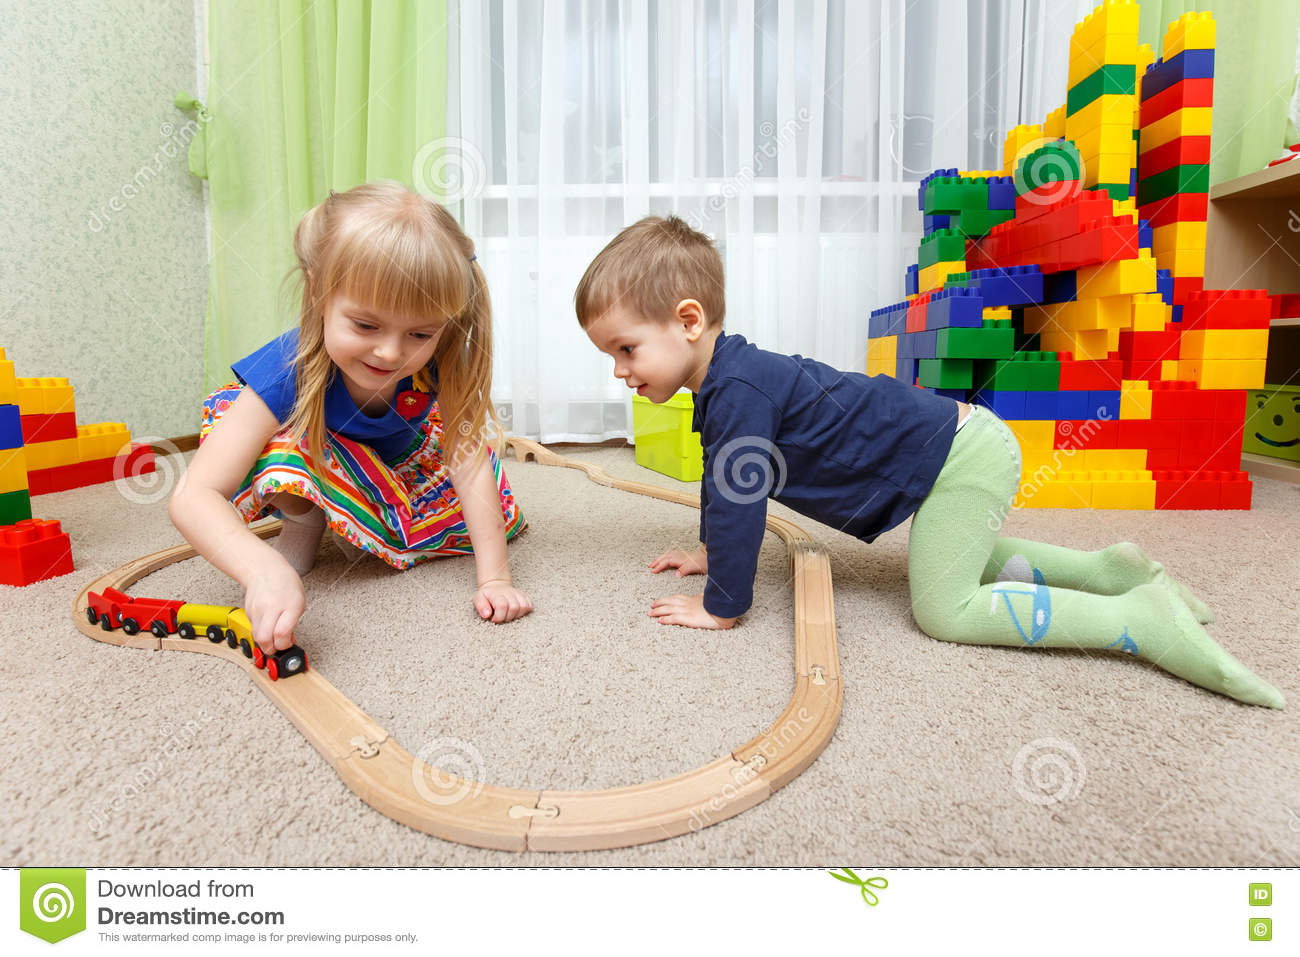 Toys For Kindergarten : Two children play with toy railway in kindergarten stock